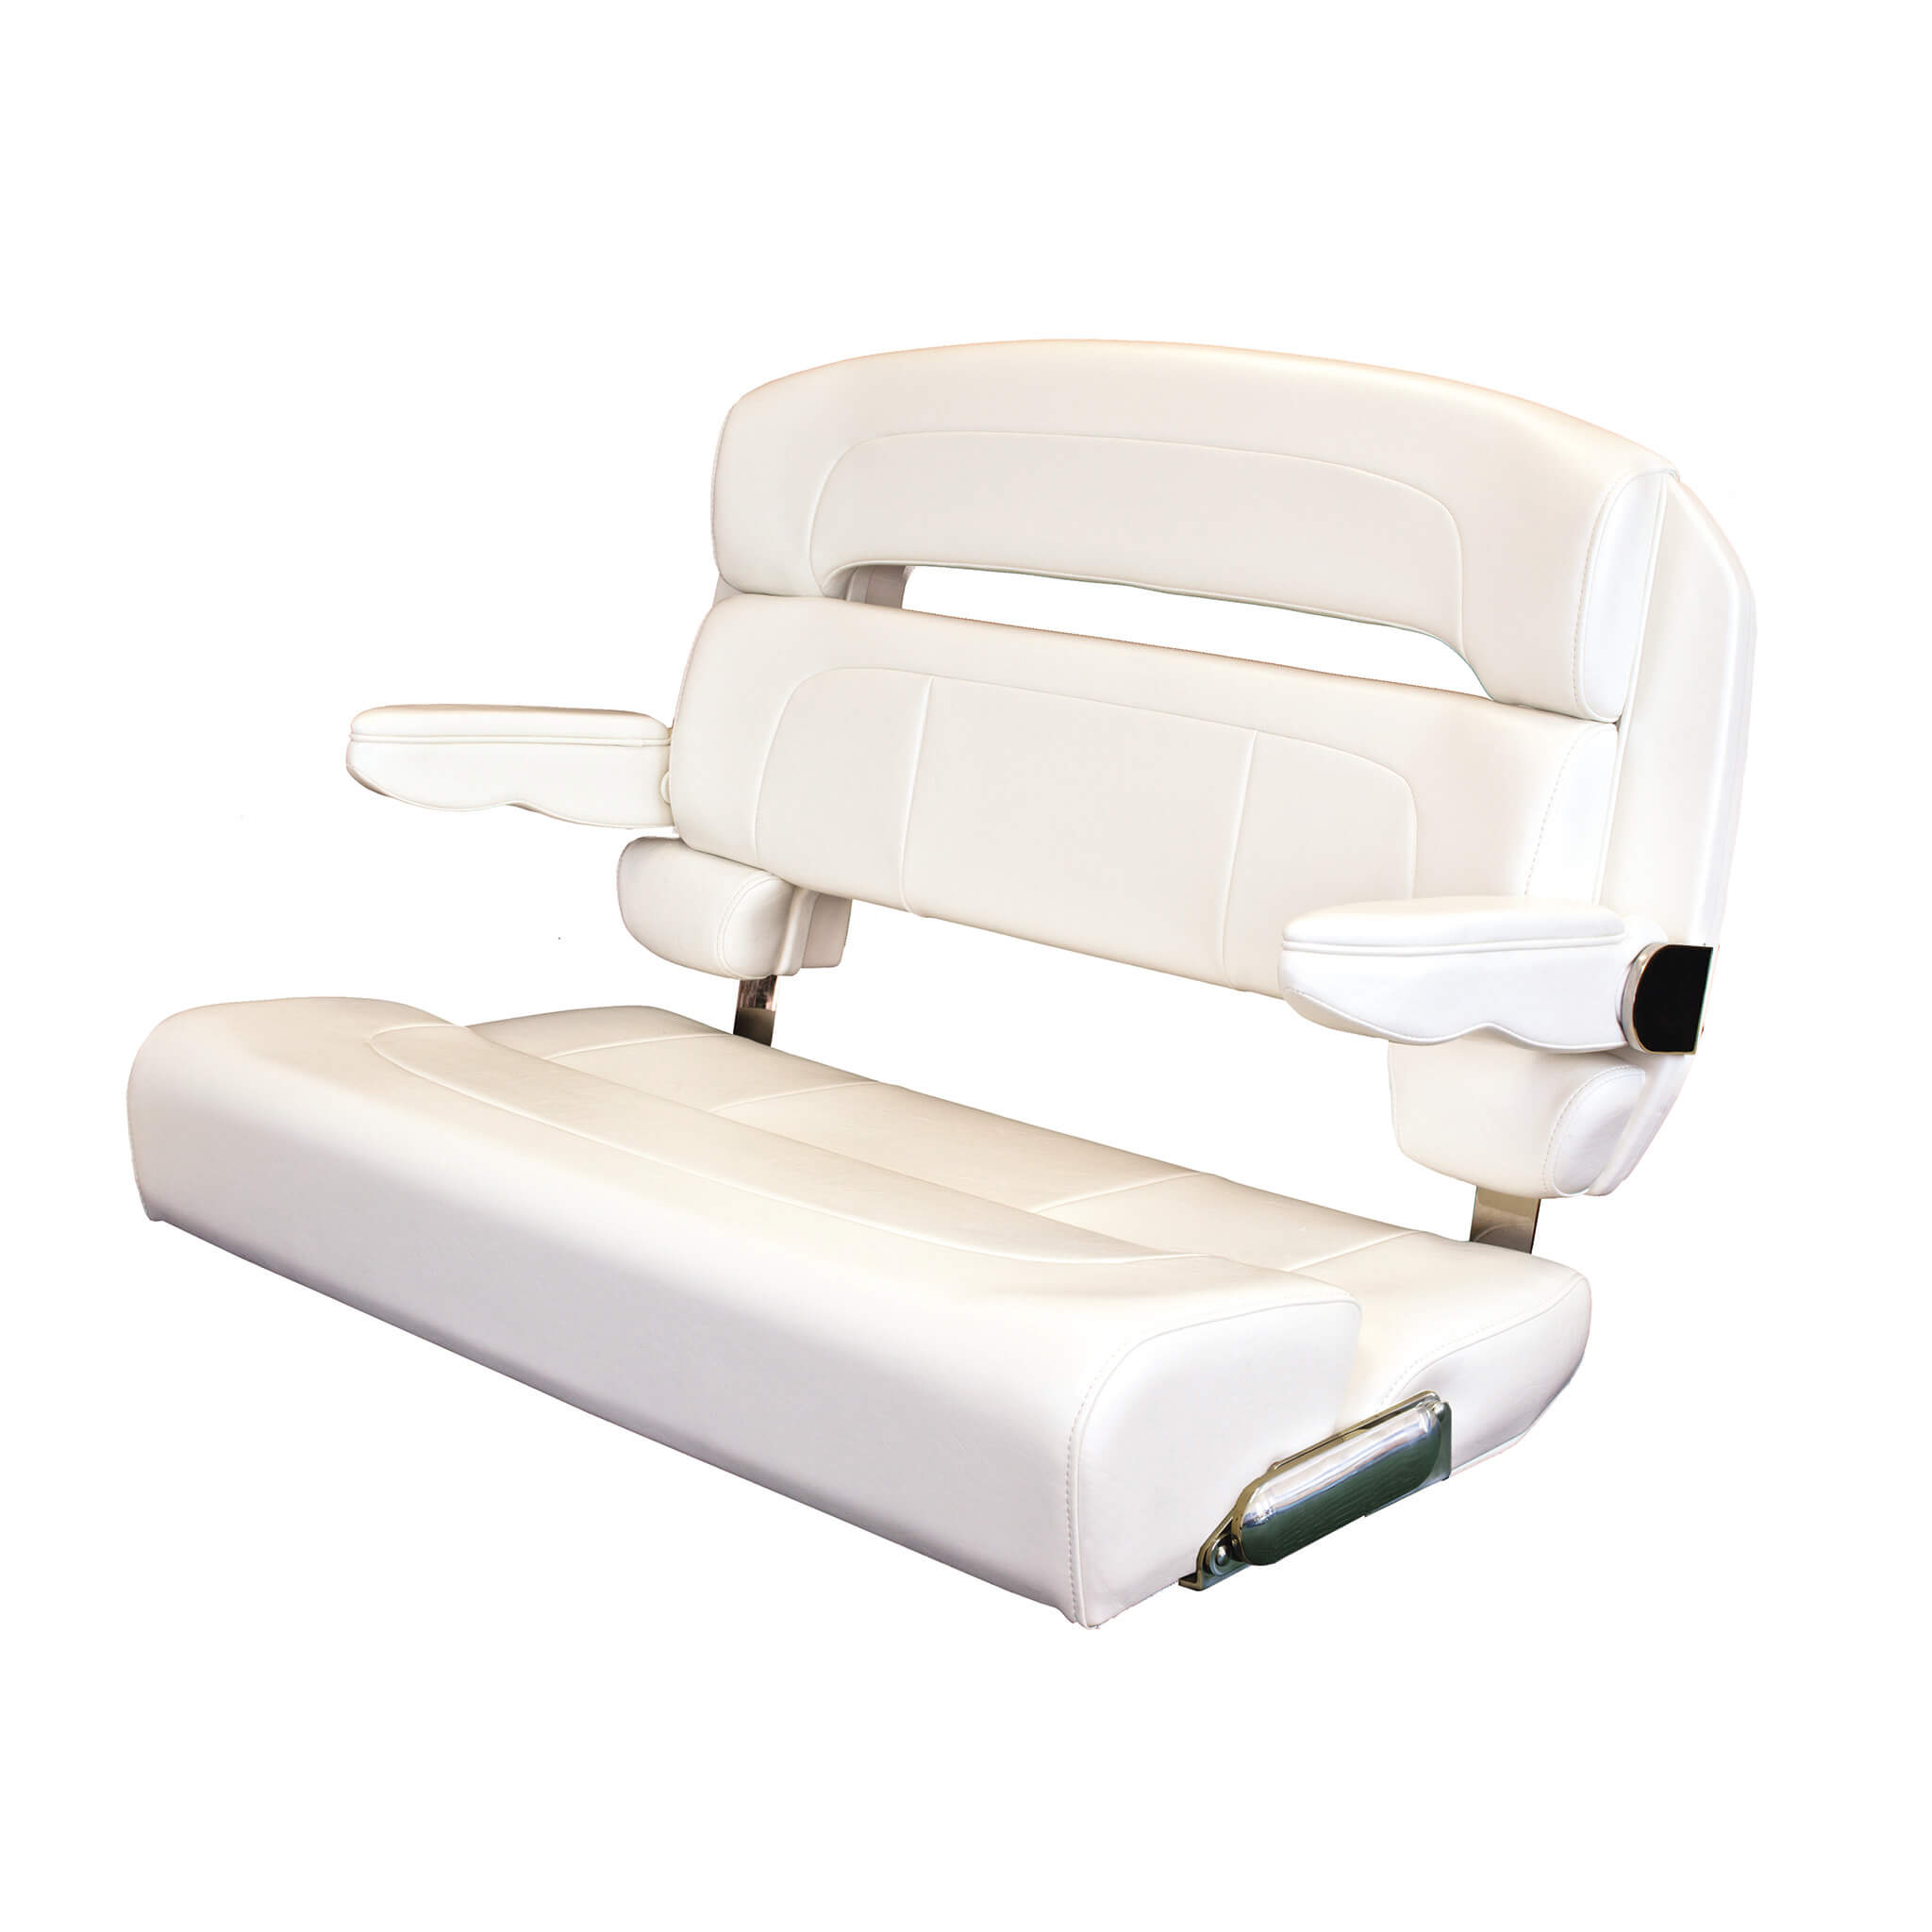 replacement captains chairs for boats cheap computer desk boat seats related keywords